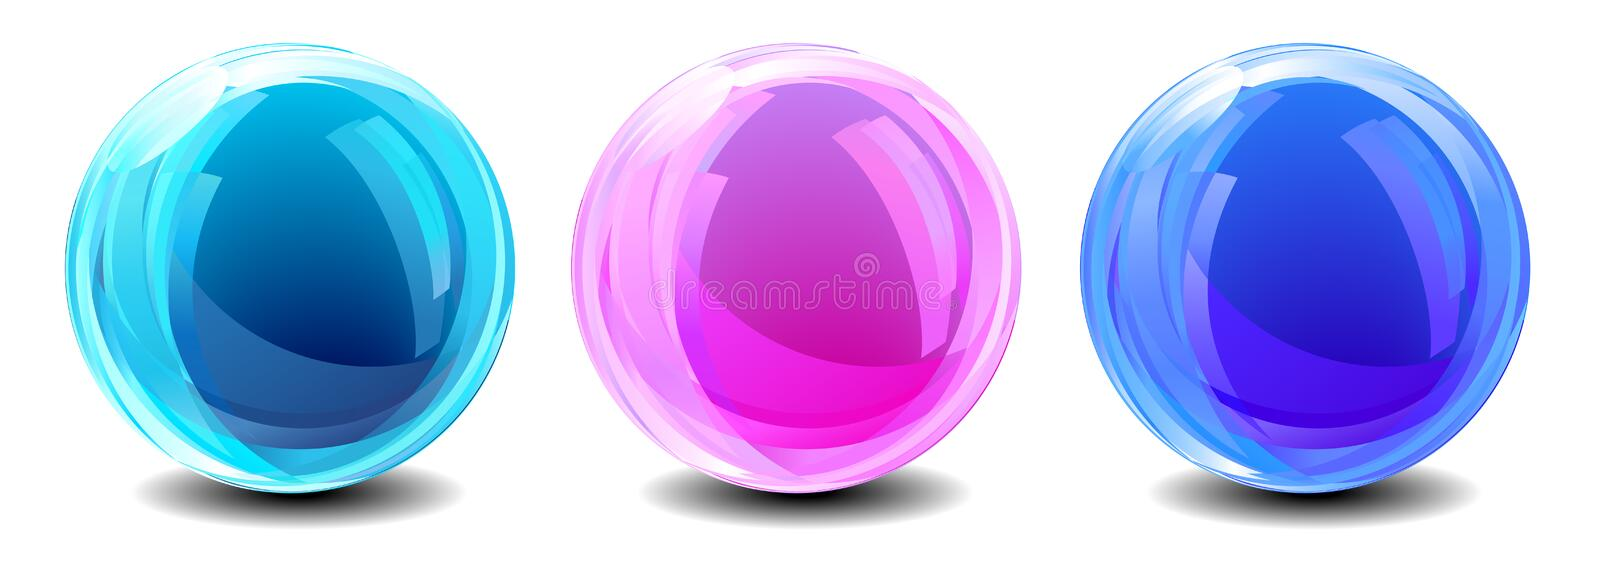 Three Abstract Globes Royalty Free Stock Photo